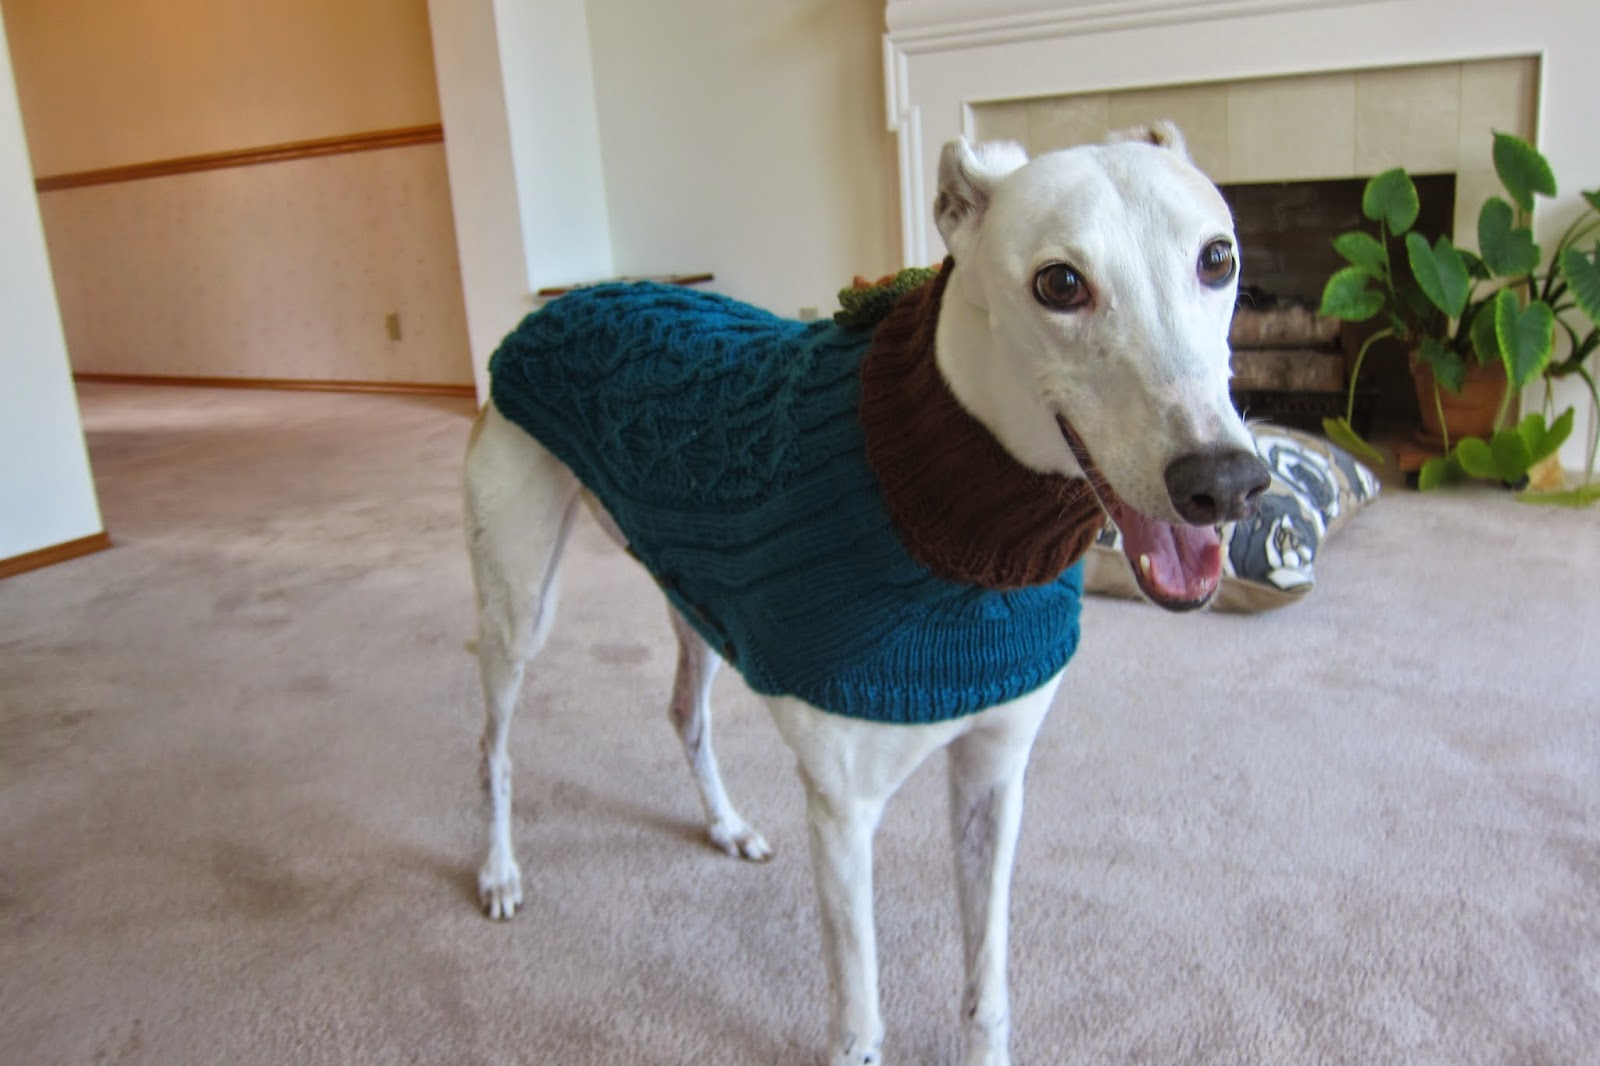 Greyhound Knit Sweaters: Blue green sweater for a girl dog